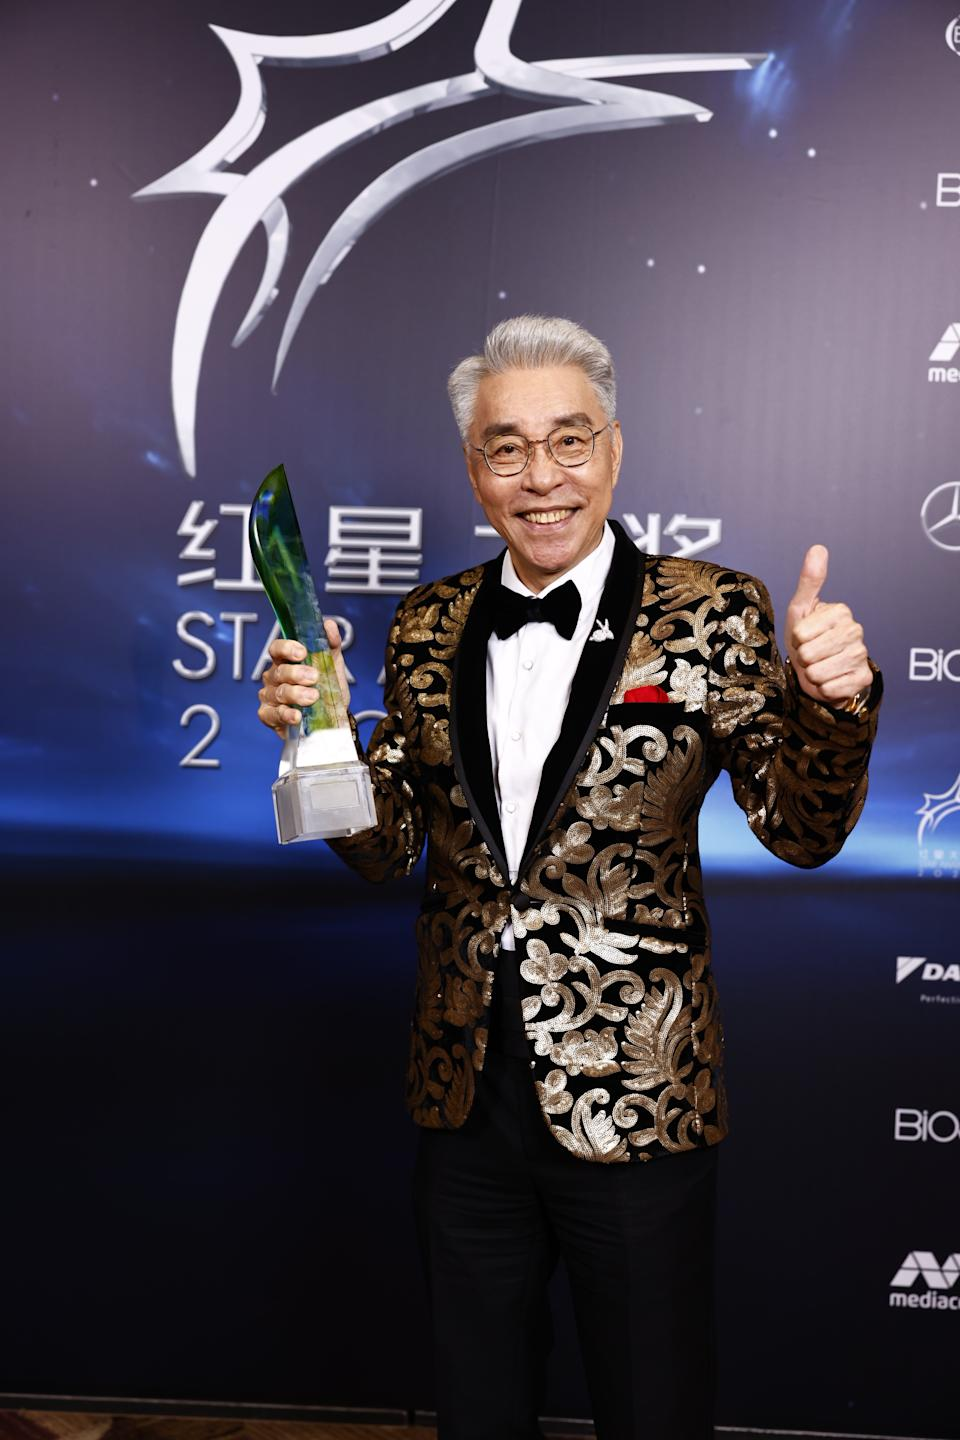 Chen Shu Cheng at Star Awards held at Changi Airport on 18 April 2021. (Photo: Mediacorp)